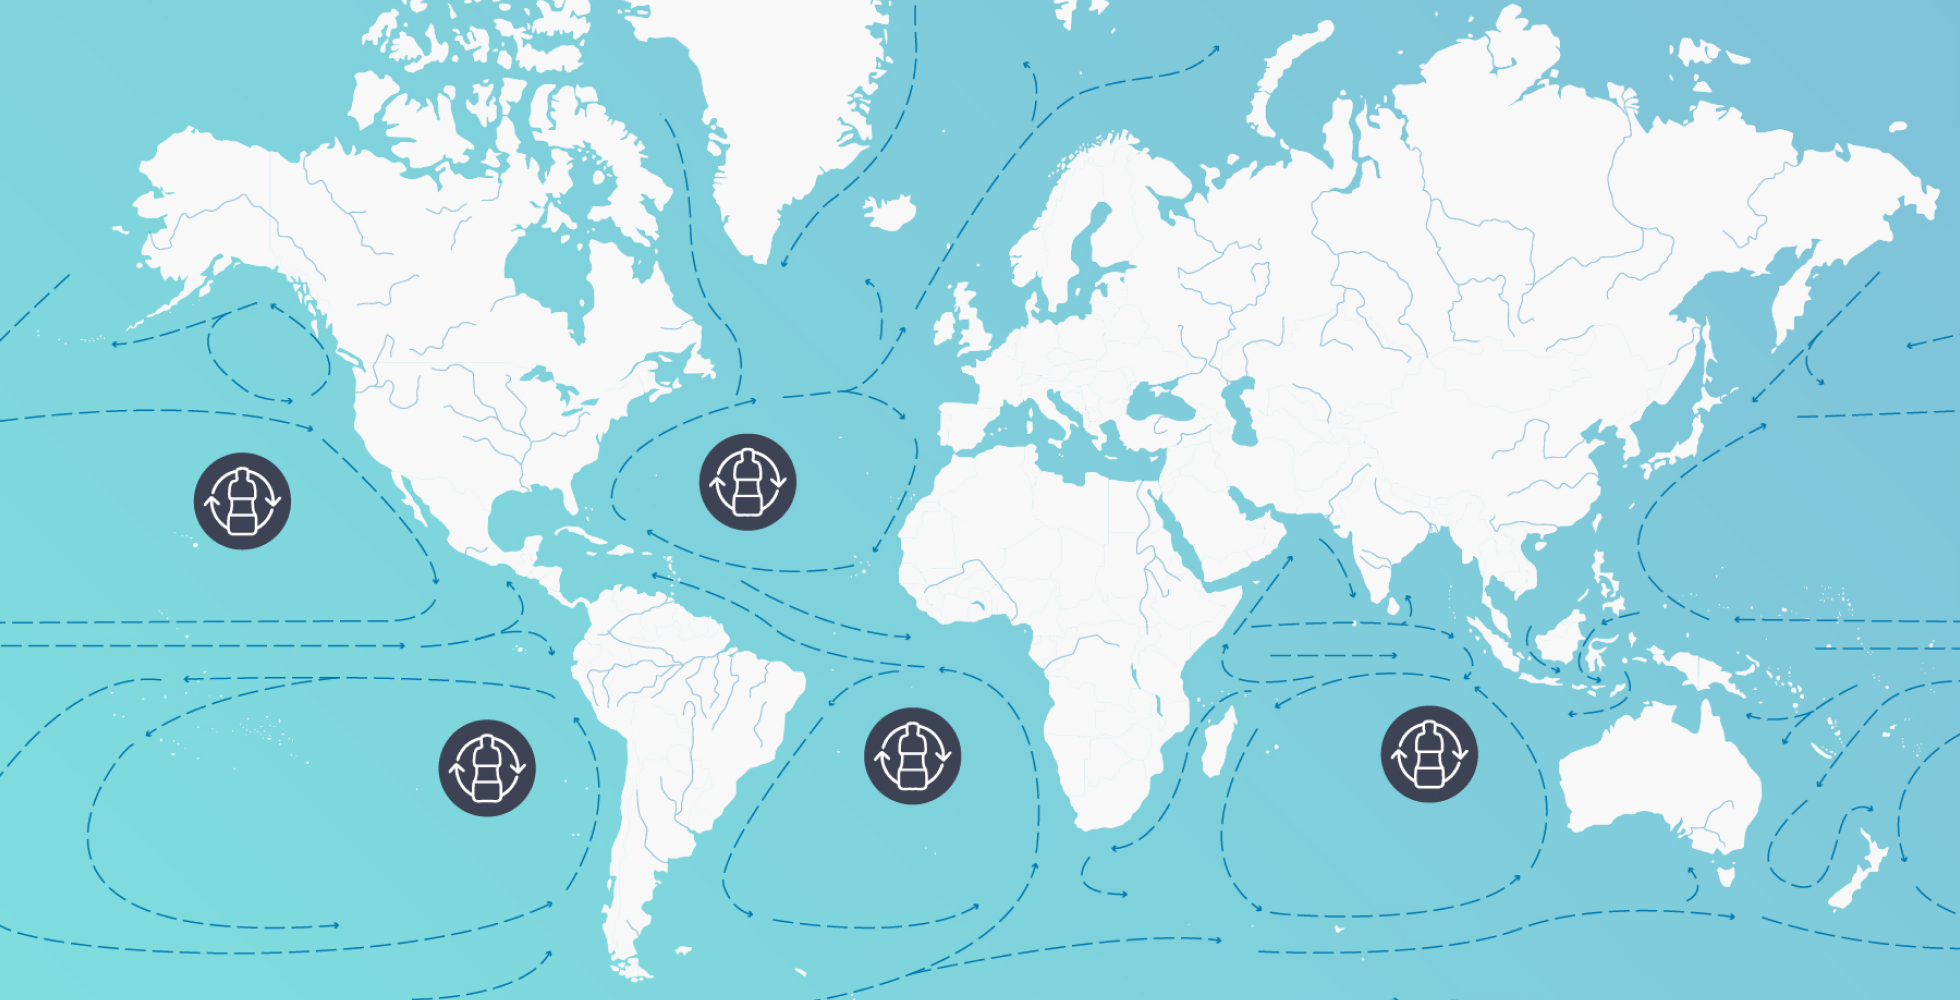 ocean currents carry plastic around the globe